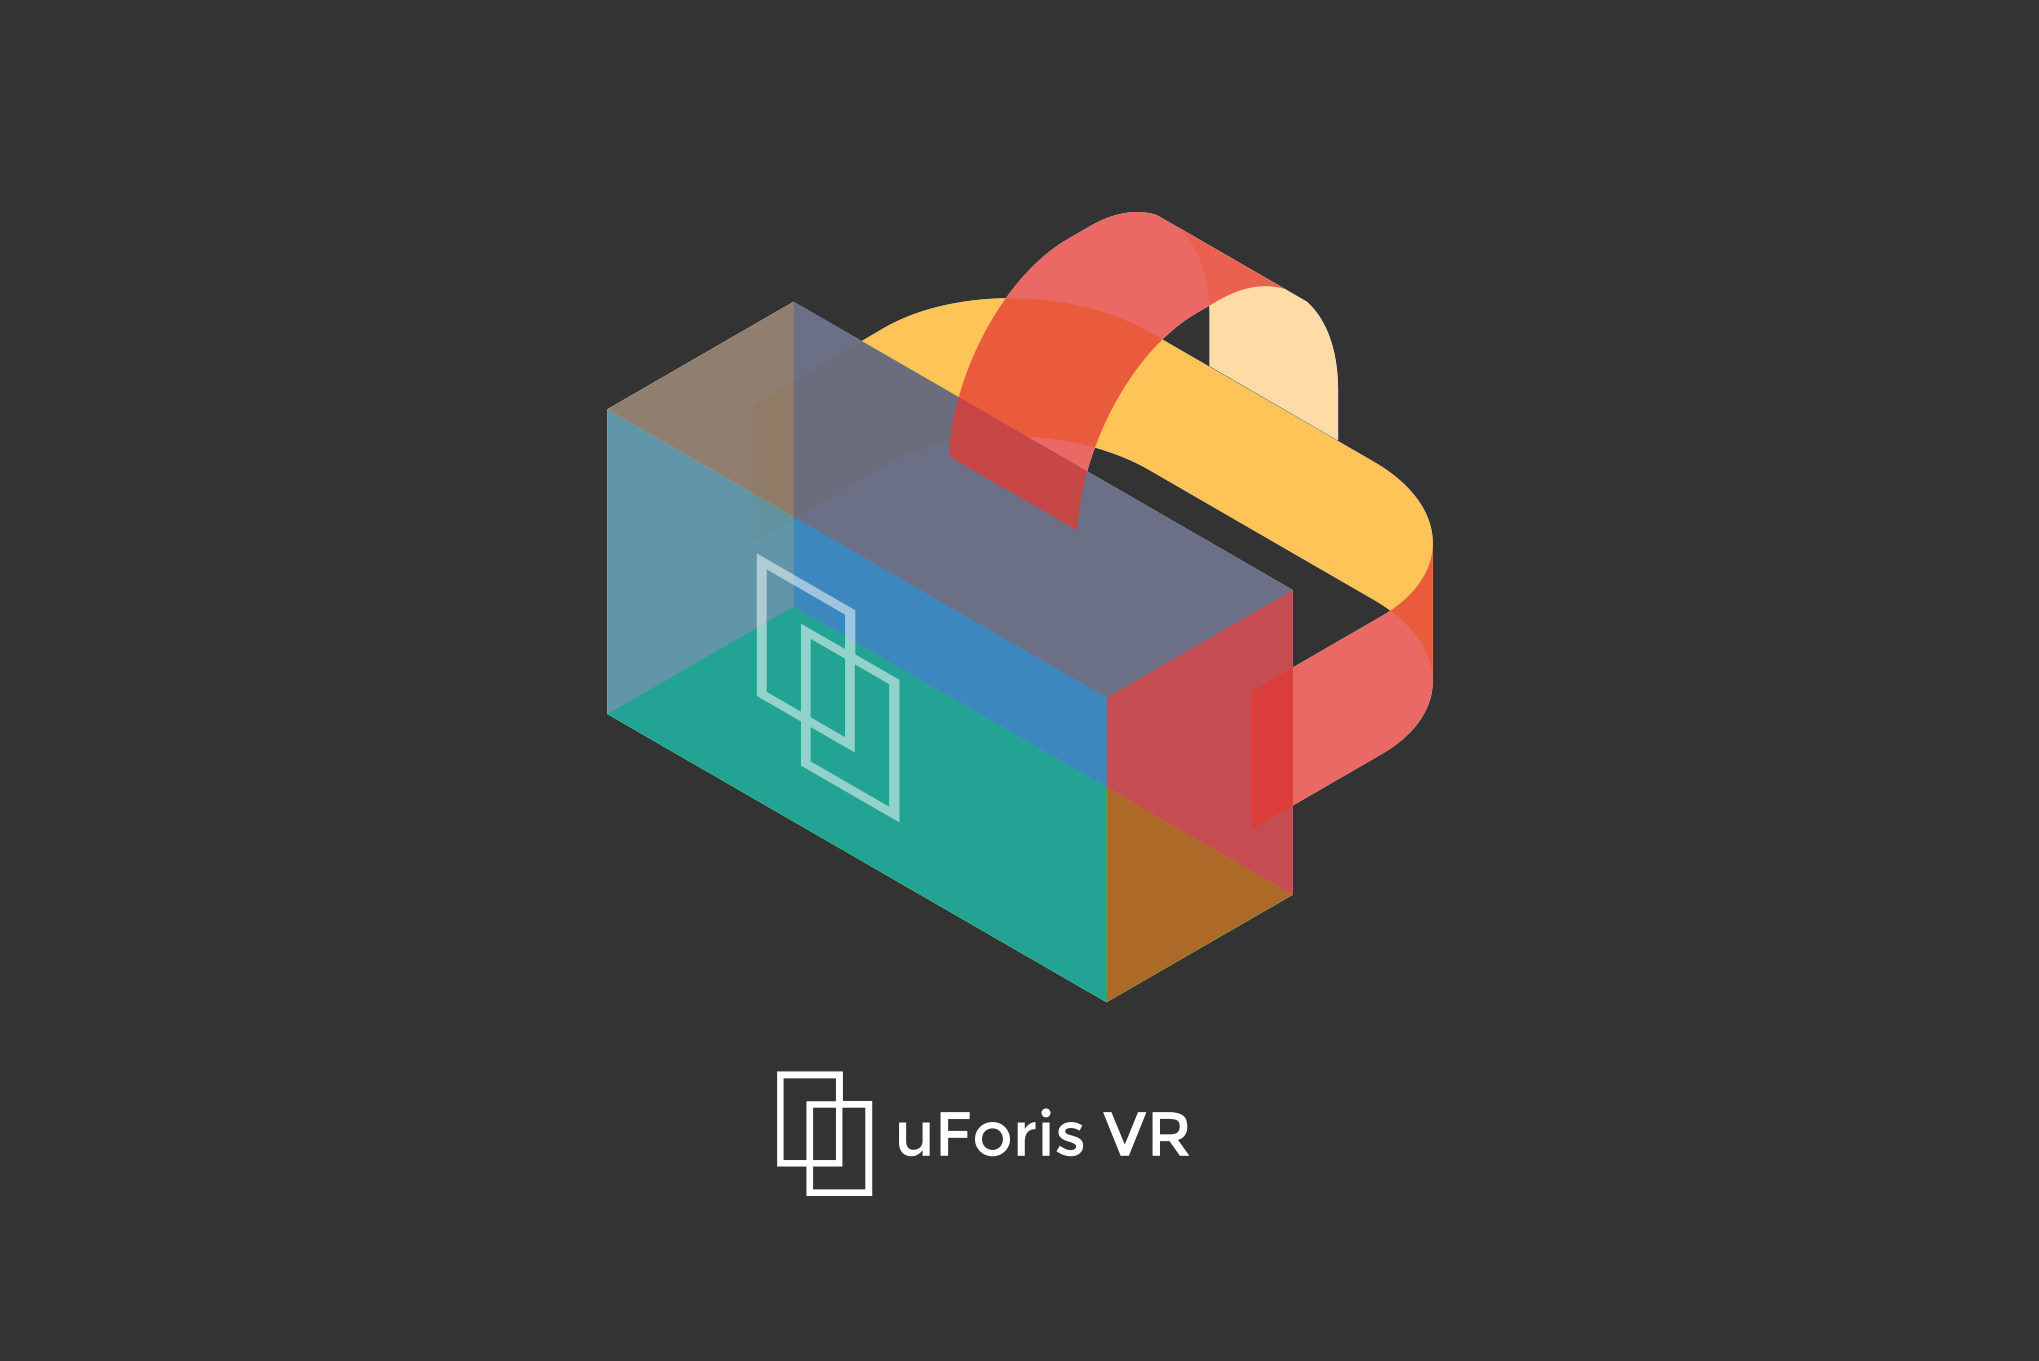 uForis VR logo design